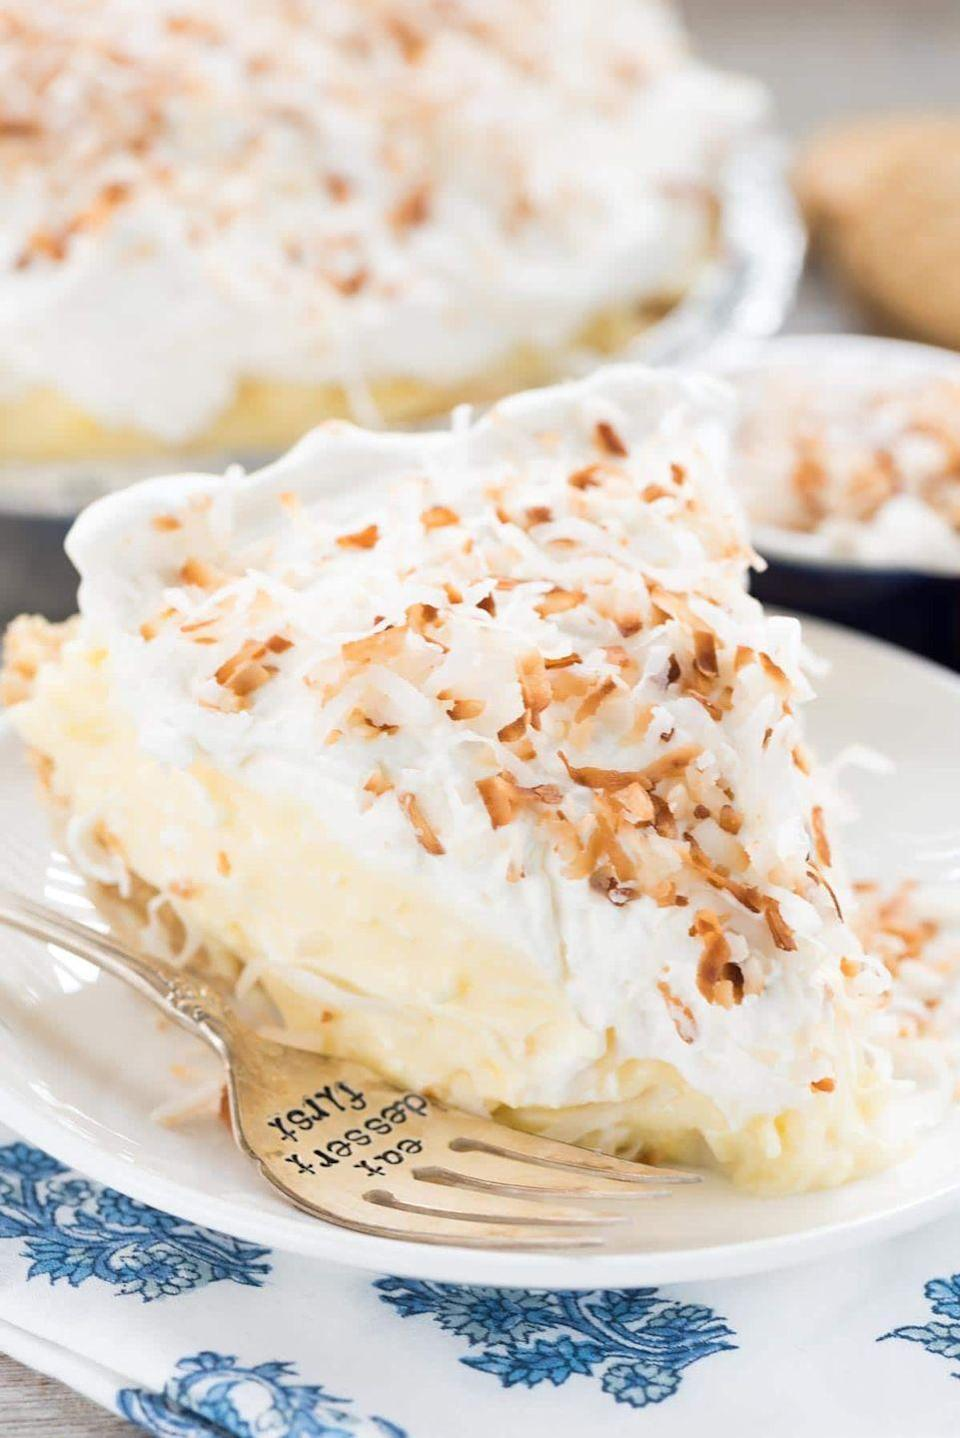 "<p>Coconut lovers will devour this creamy, nutty pie. This version is no-bake so it's so easy to make!</p><p><strong>Get the recipe at <a href=""https://www.crazyforcrust.com/easy-no-bake-coconut-cream-pie/"" rel=""nofollow noopener"" target=""_blank"" data-ylk=""slk:Crazy for Crust"" class=""link rapid-noclick-resp"">Crazy for Crust</a>.</strong></p><p><strong><a class=""link rapid-noclick-resp"" href=""https://go.redirectingat.com?id=74968X1596630&url=https%3A%2F%2Fwww.walmart.com%2Fbrowse%2Fhome%2Fpie-dishes-tart-pans%2F4044_623679_8455465_4674050%3Ffacet%3Dbrand%253AThe%2BPioneer%2BWoman&sref=https%3A%2F%2Fwww.thepioneerwoman.com%2Ffood-cooking%2Fmeals-menus%2Fg35408493%2Feaster-desserts%2F"" rel=""nofollow noopener"" target=""_blank"" data-ylk=""slk:SHOP PIE PLATES"">SHOP PIE PLATES</a><br></strong></p>"